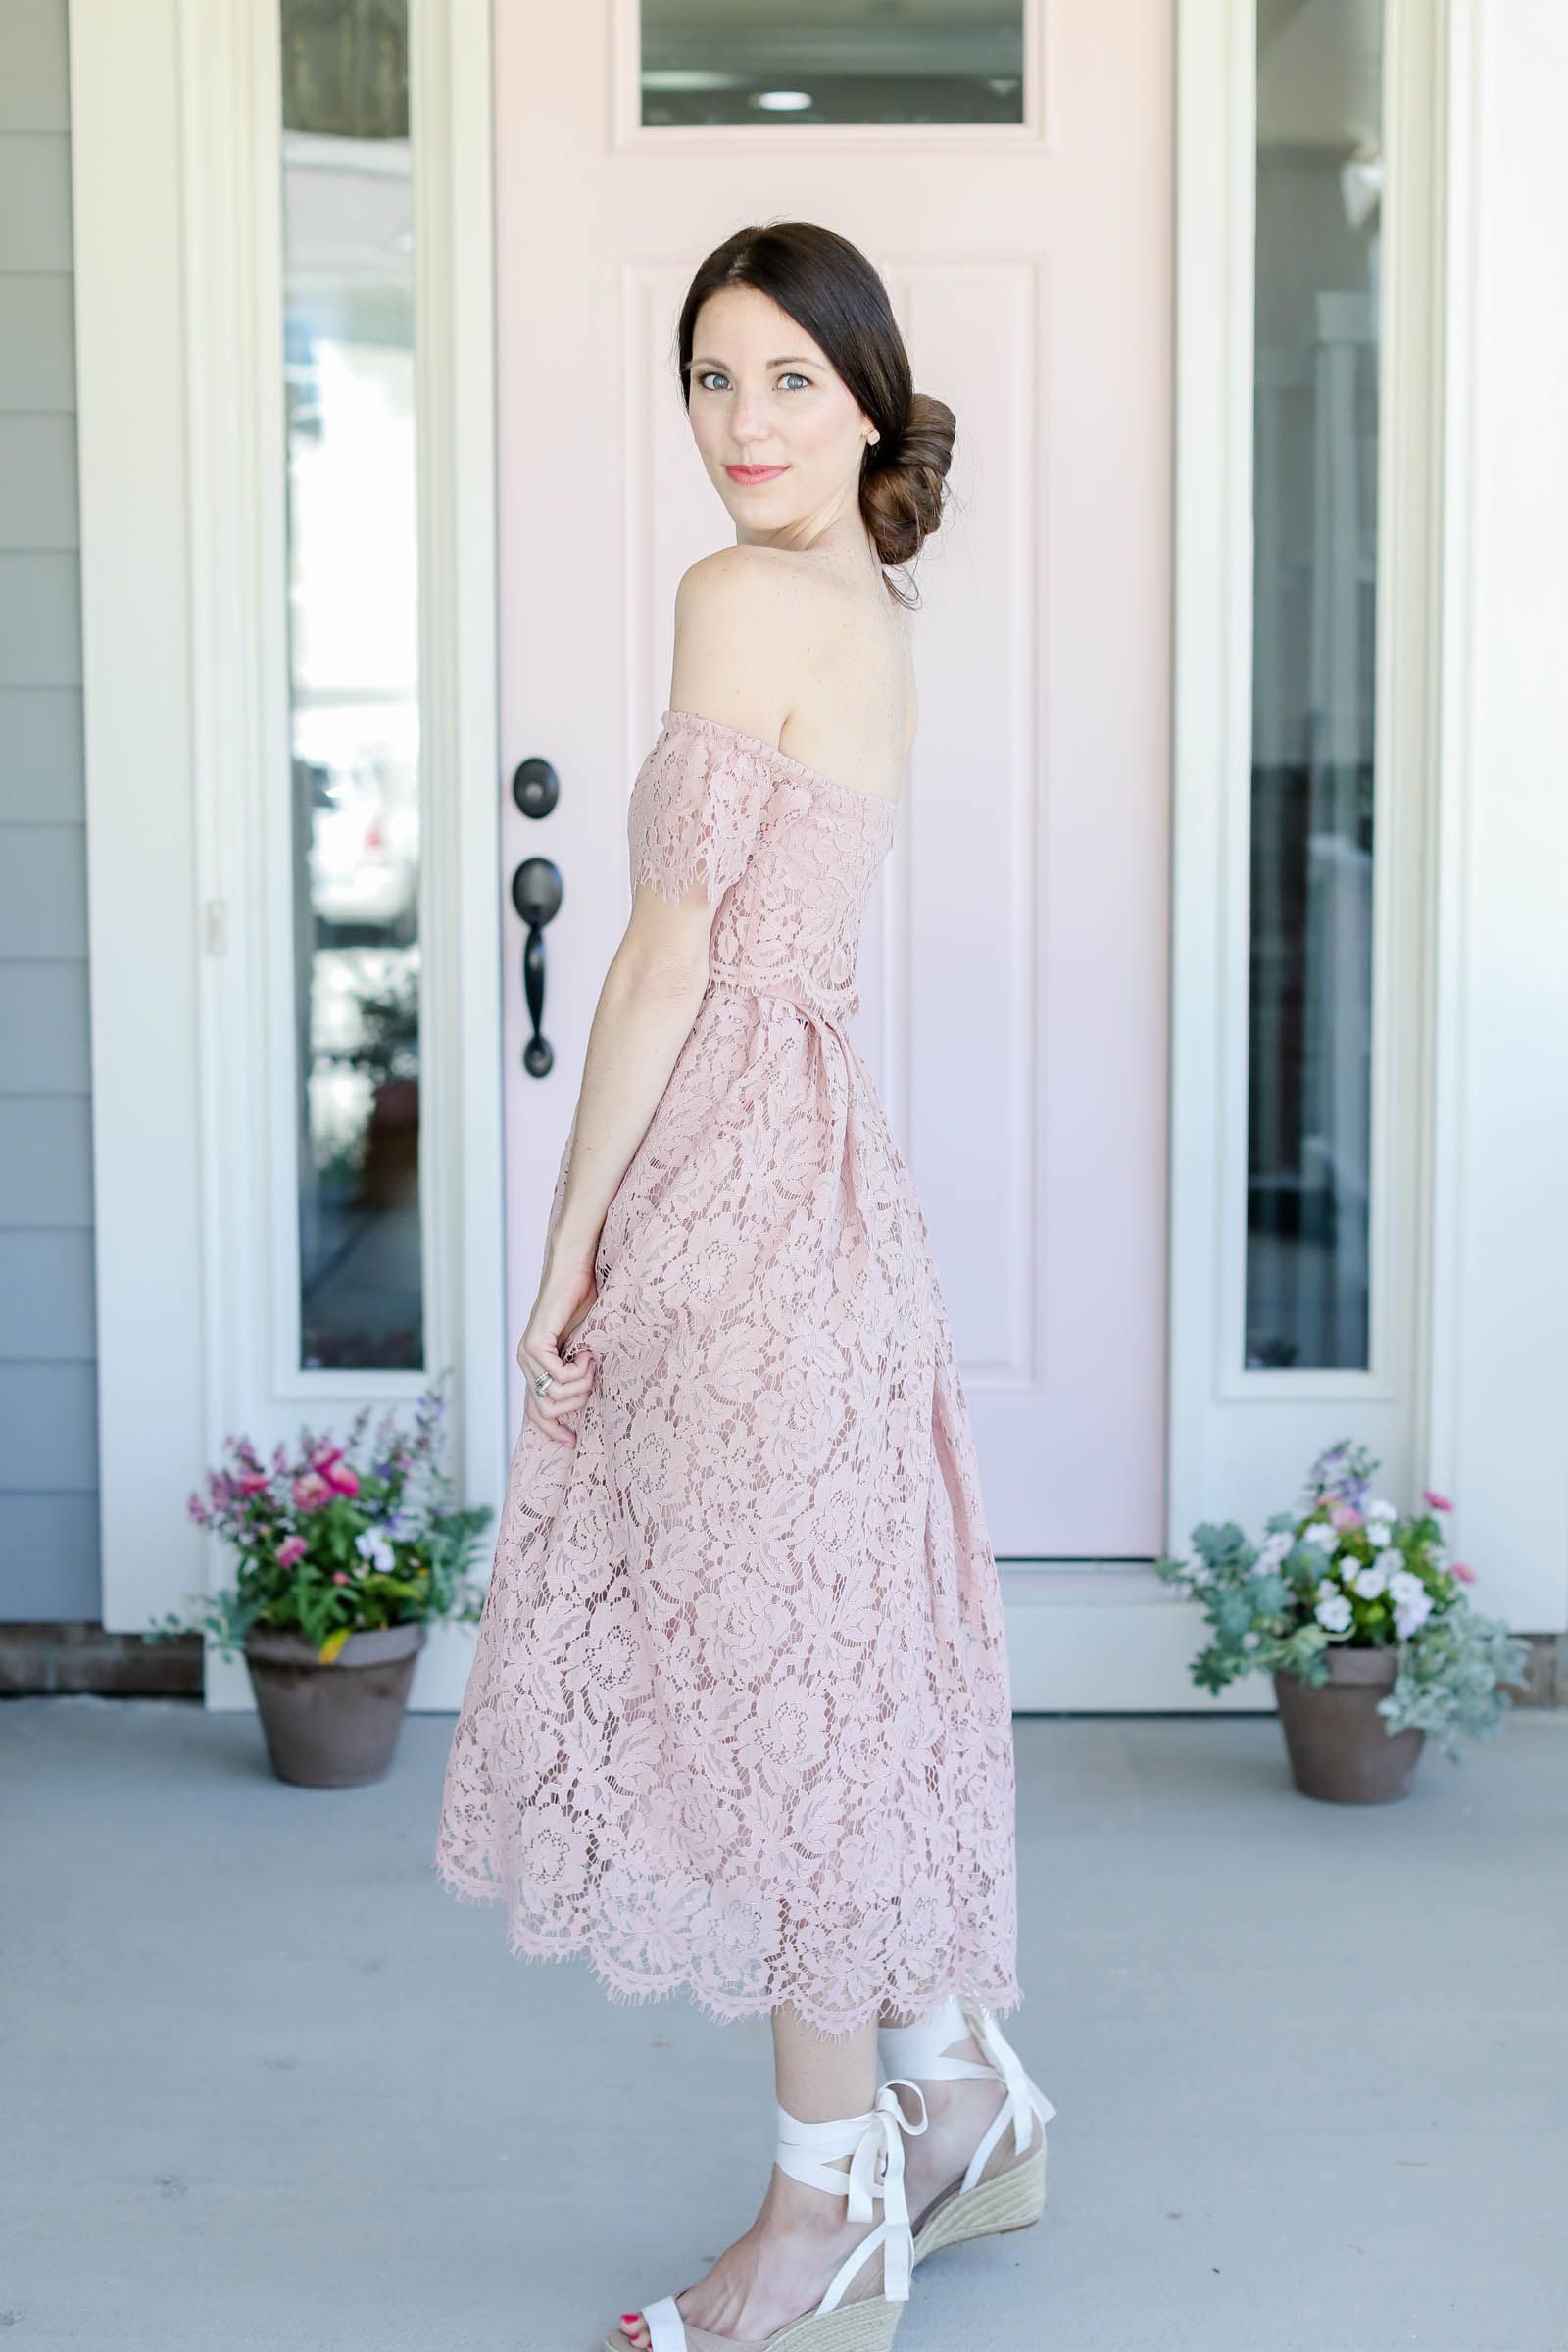 Summer wedding guest dresses and styles wedding guest dresses